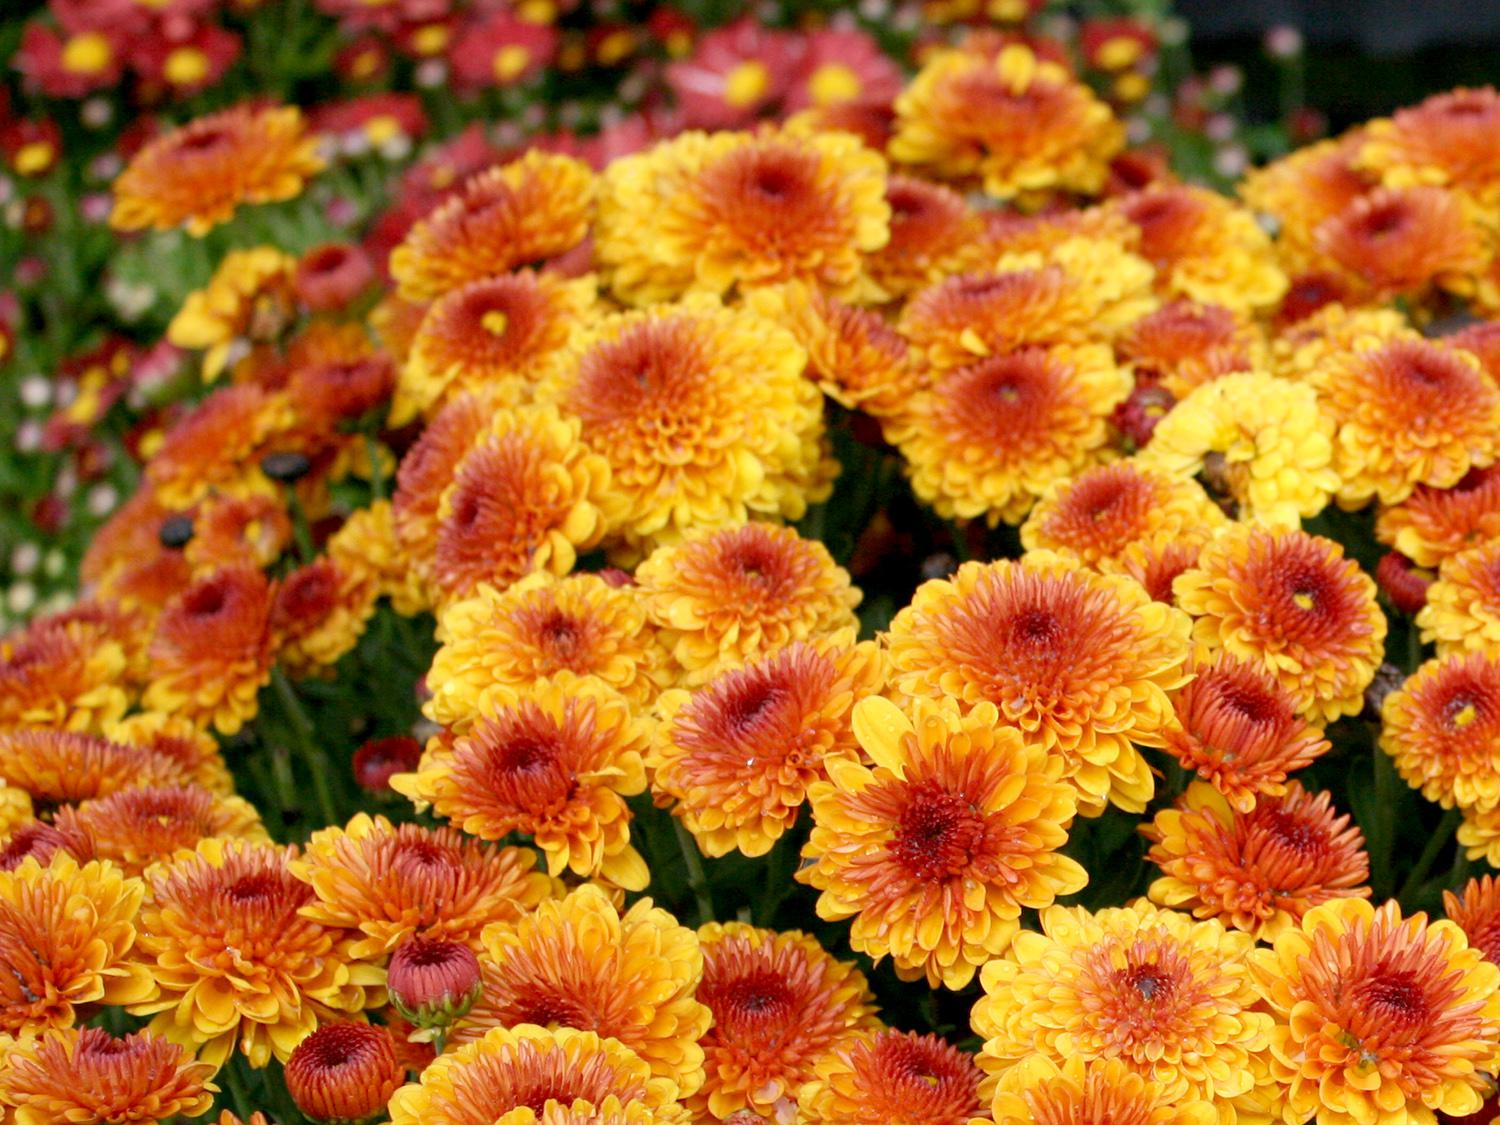 Fall mums are a useful bridge crop between summer and fall. They can be treated as seasonal annuals to provide an easy and reliable display of color for the in-between period. (Photo by MSU Extension/Gary Bachman)